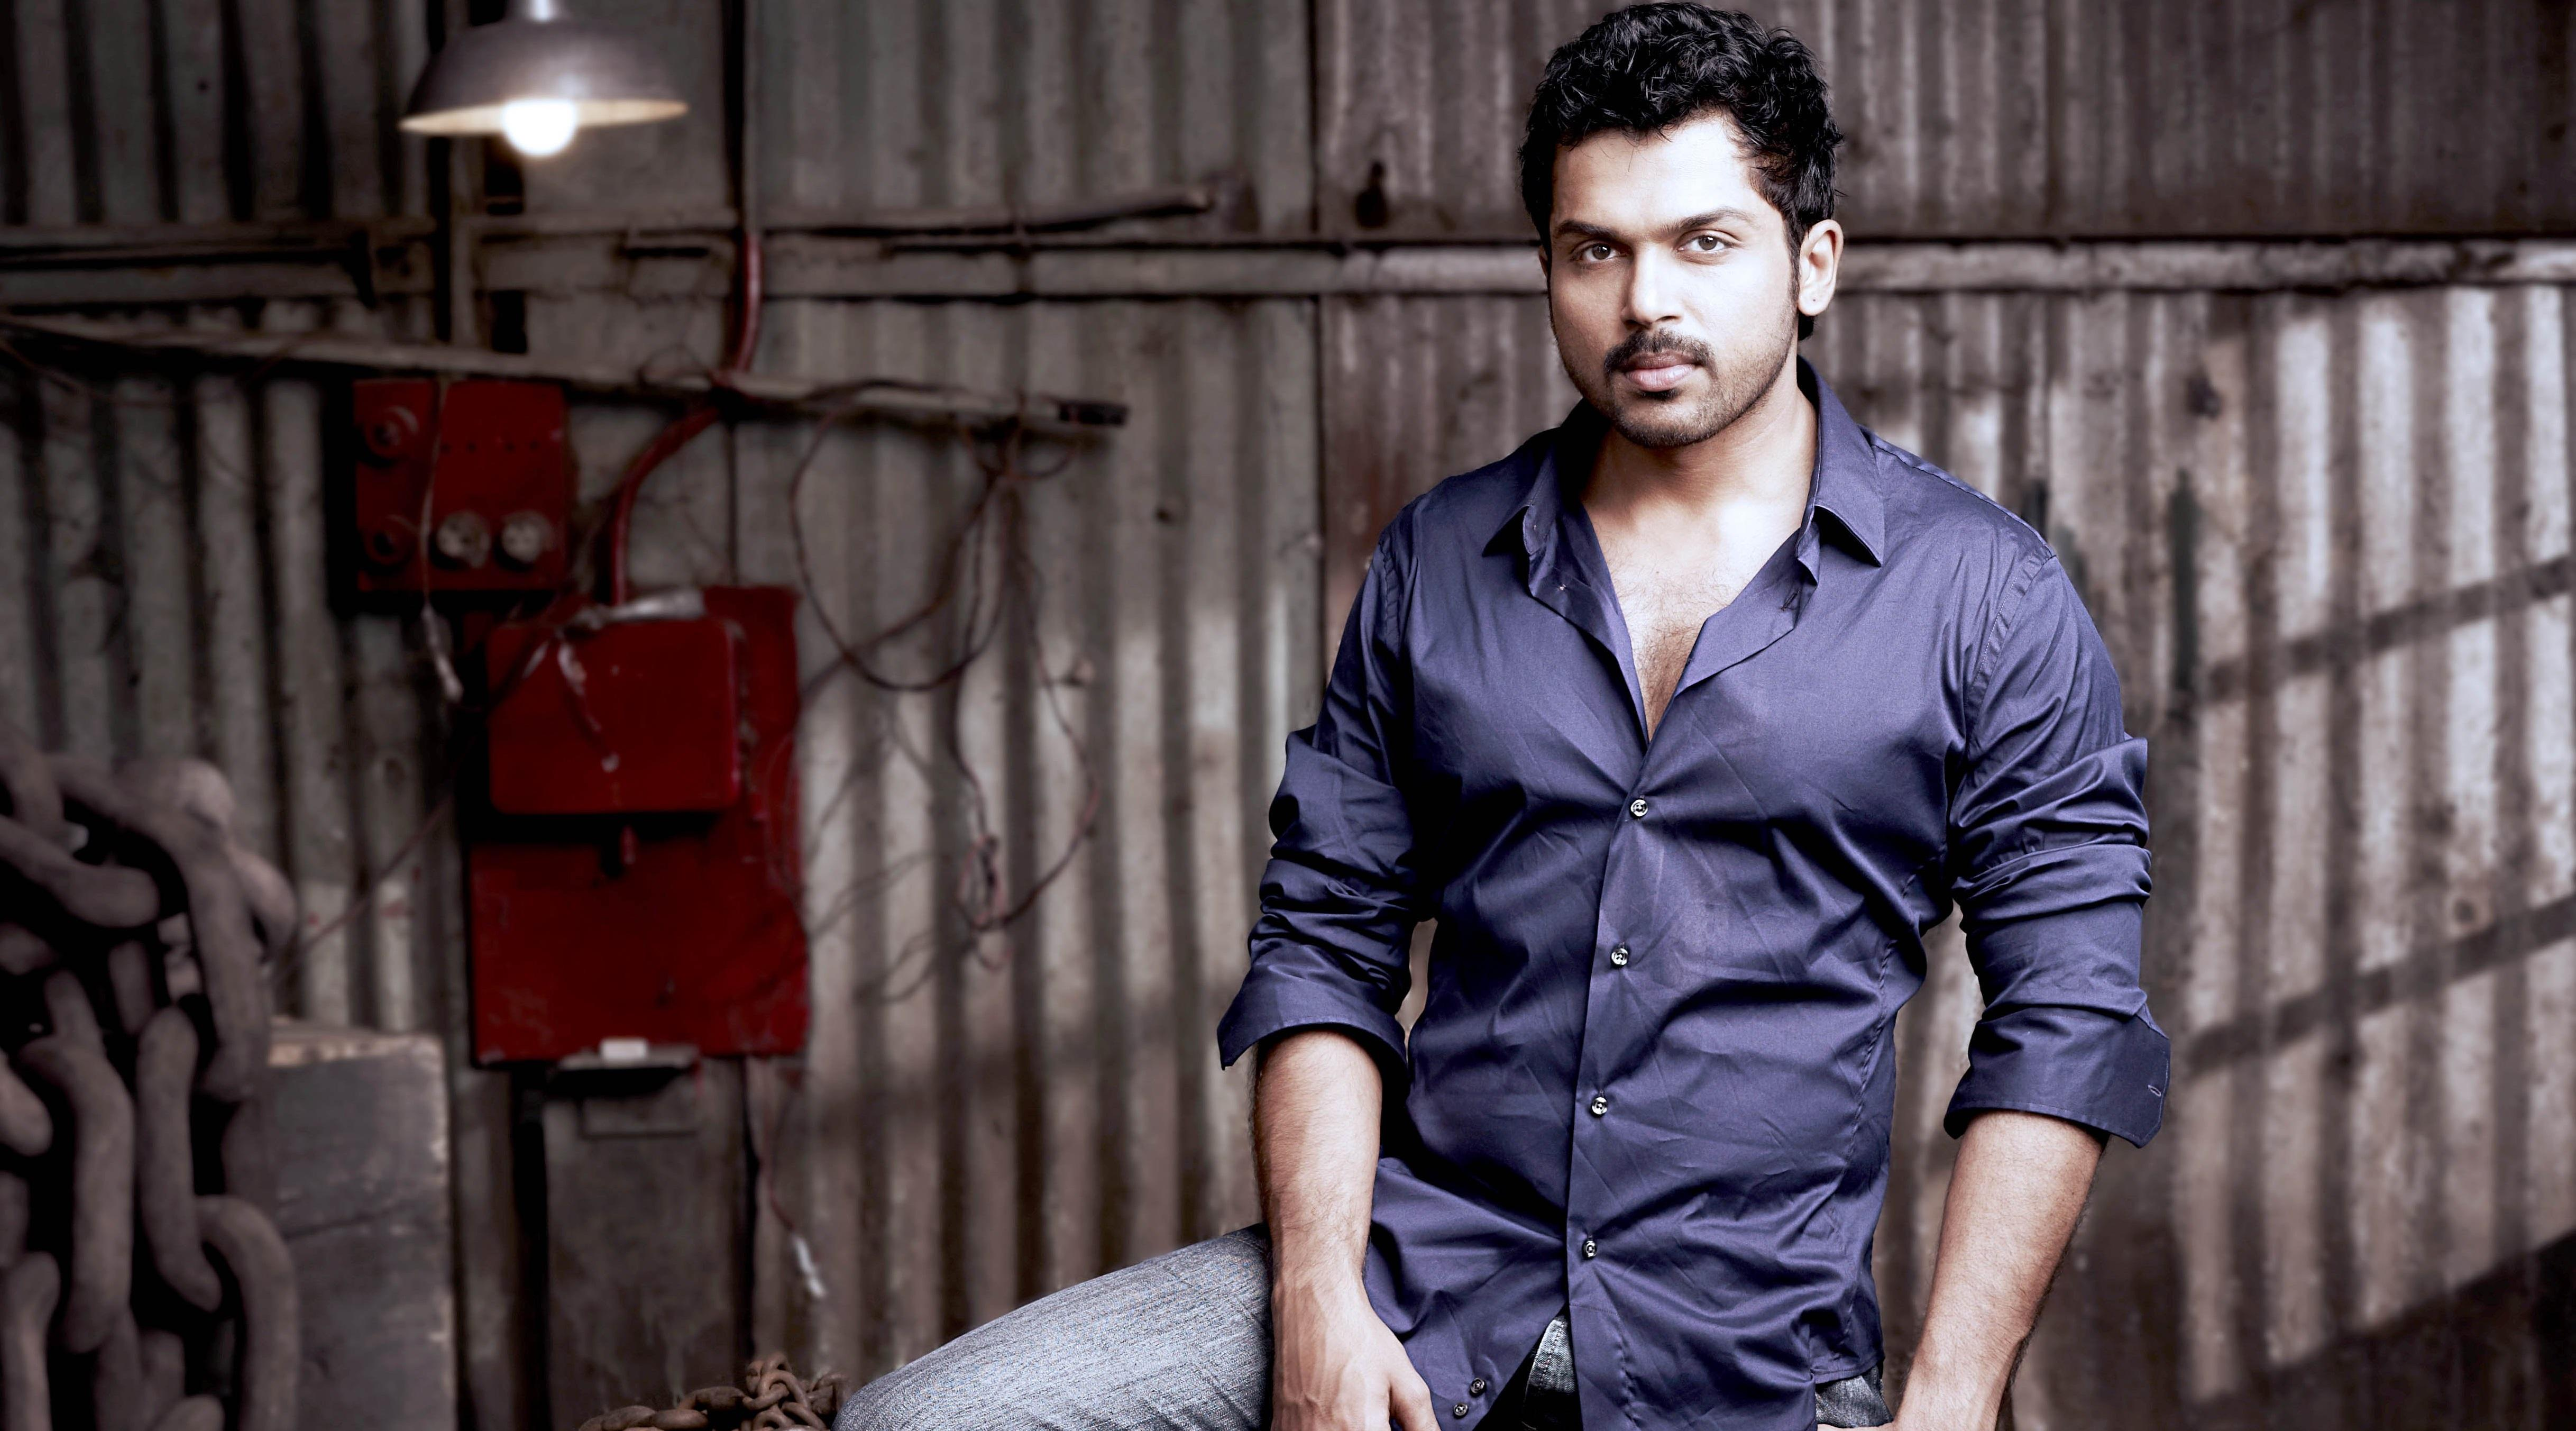 Karthik Shivakumar Most Handsome South Indian Actor